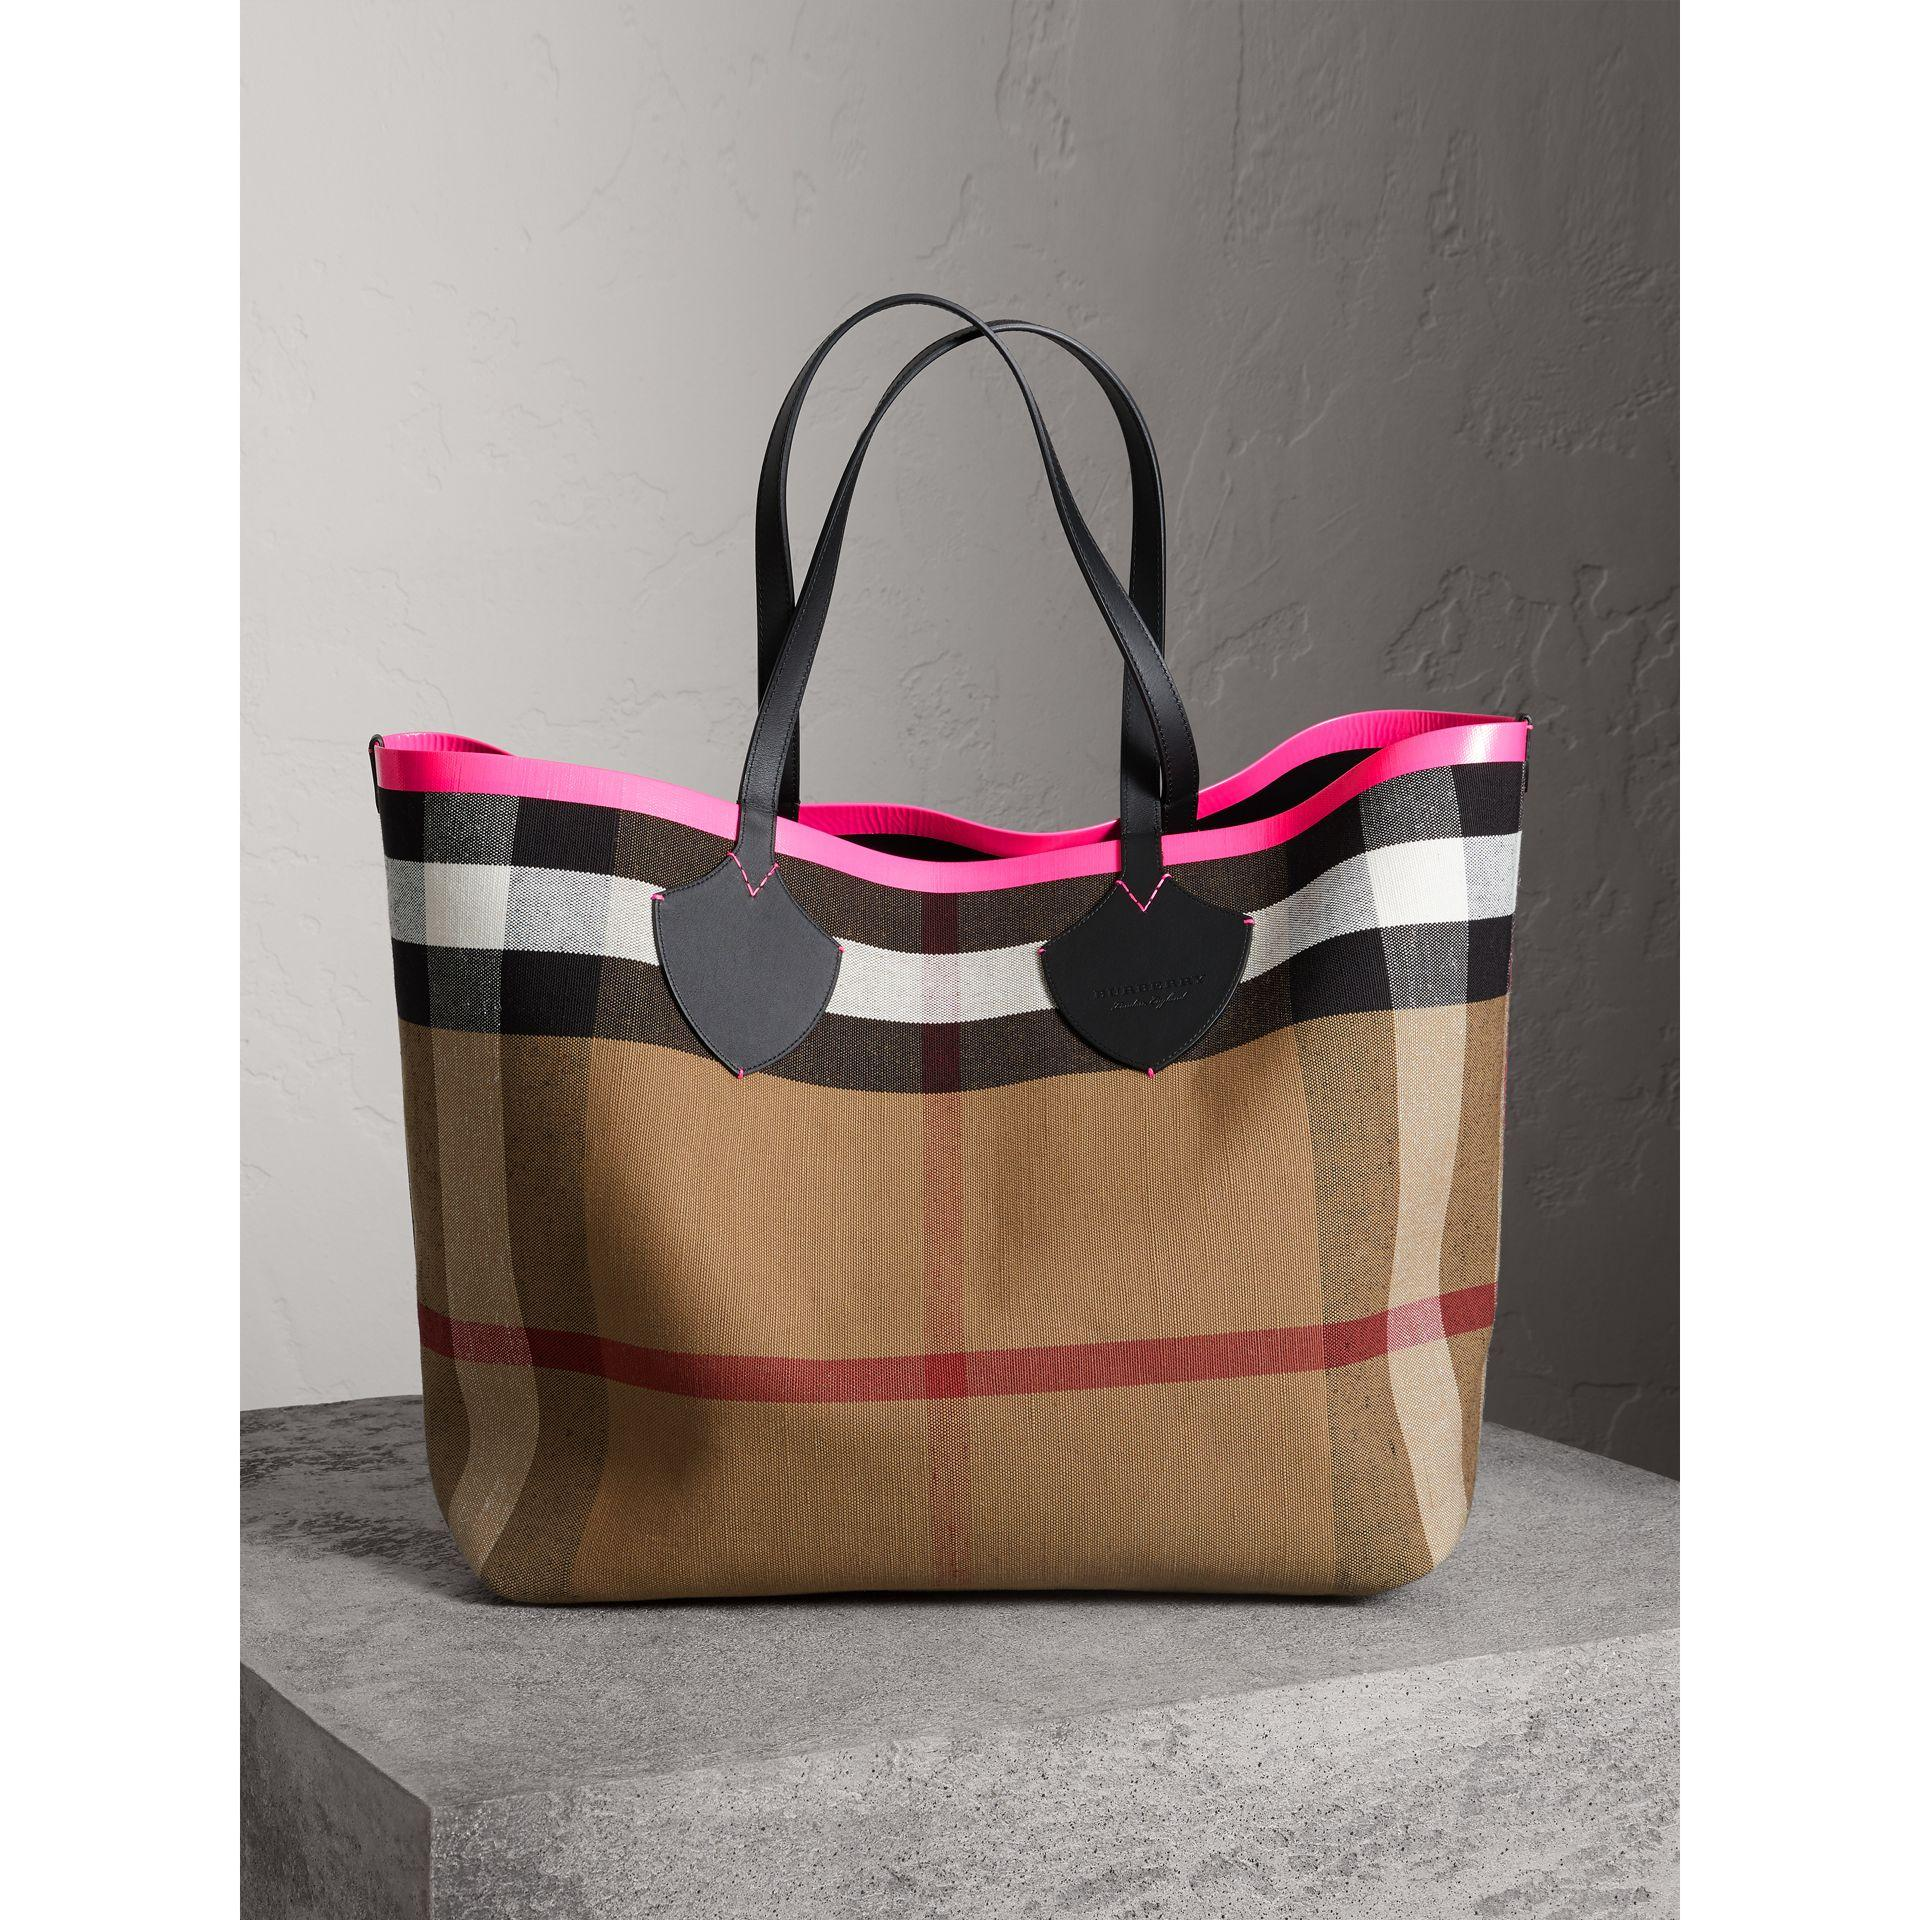 3fef642424ce Burberry The Giant Reversible Tote In Canvas Check And Leather In  Black Neon Pink